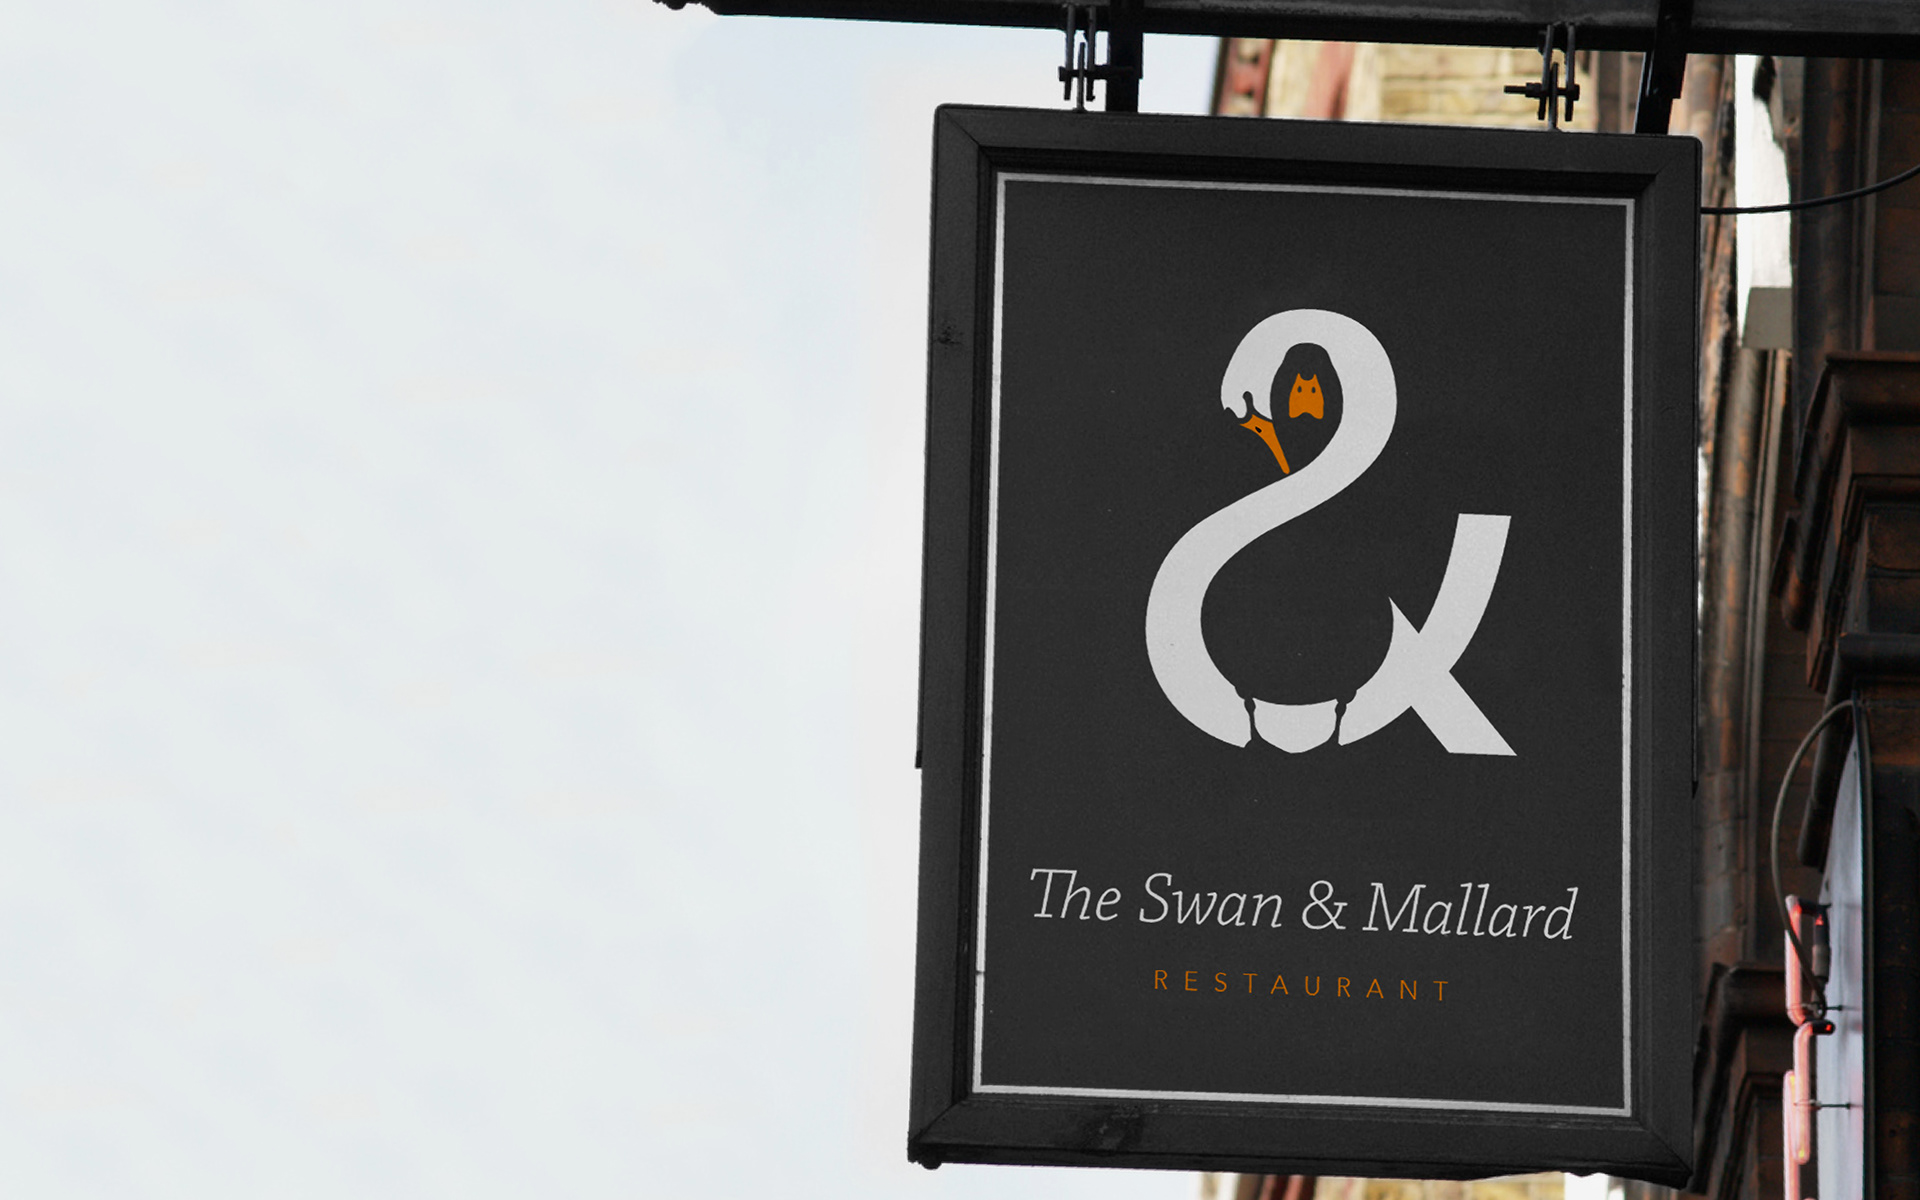 Graphic Designer content creators restaurant black and white logo swan and mallard duck